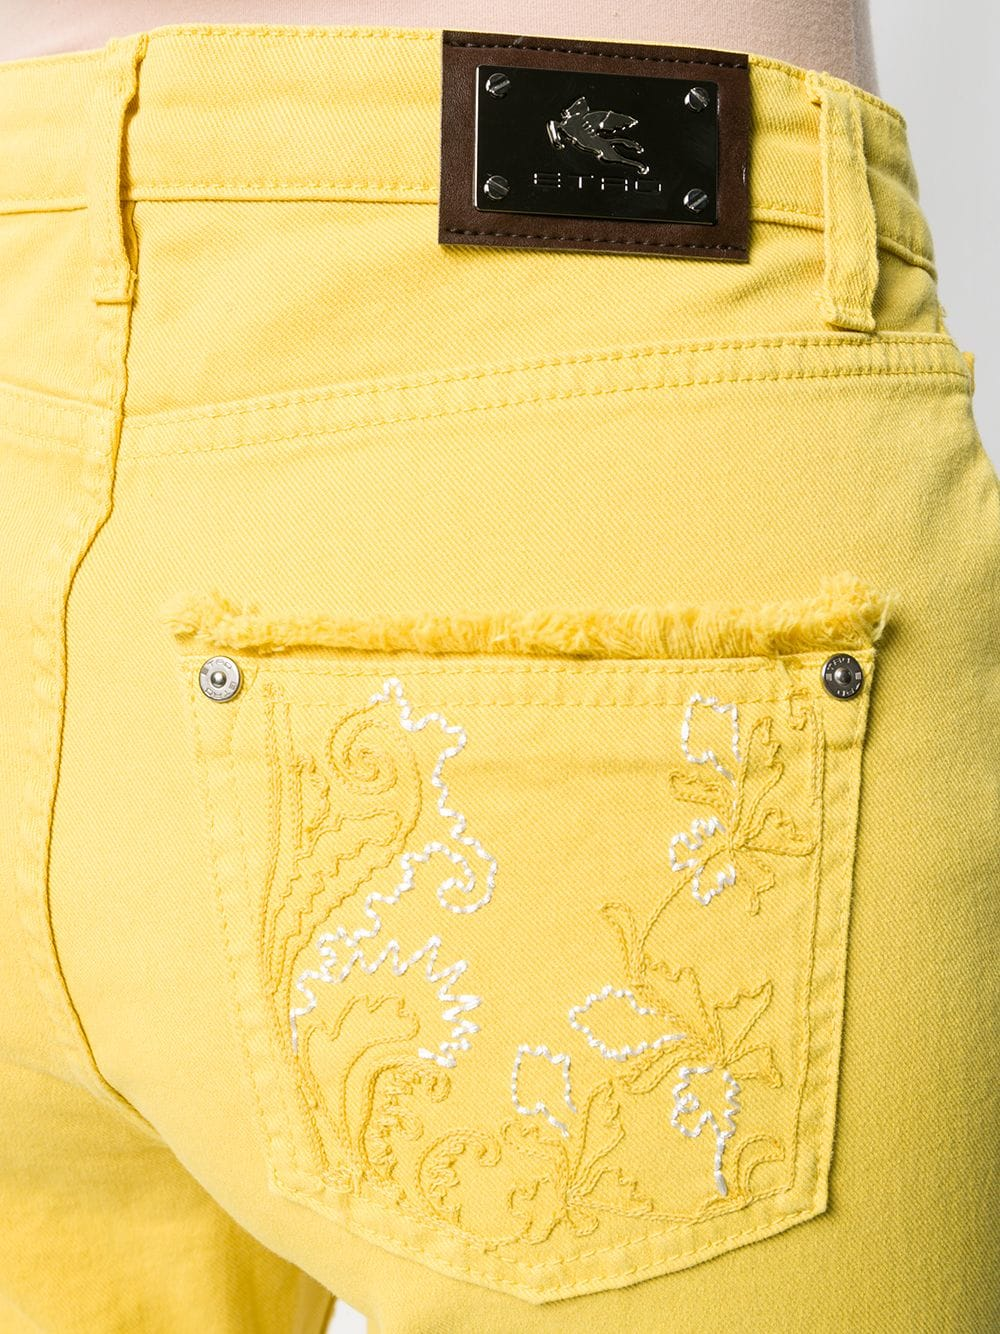 452e7942 Frayed Edges Yellow Jeans - ETRO - Russocapri